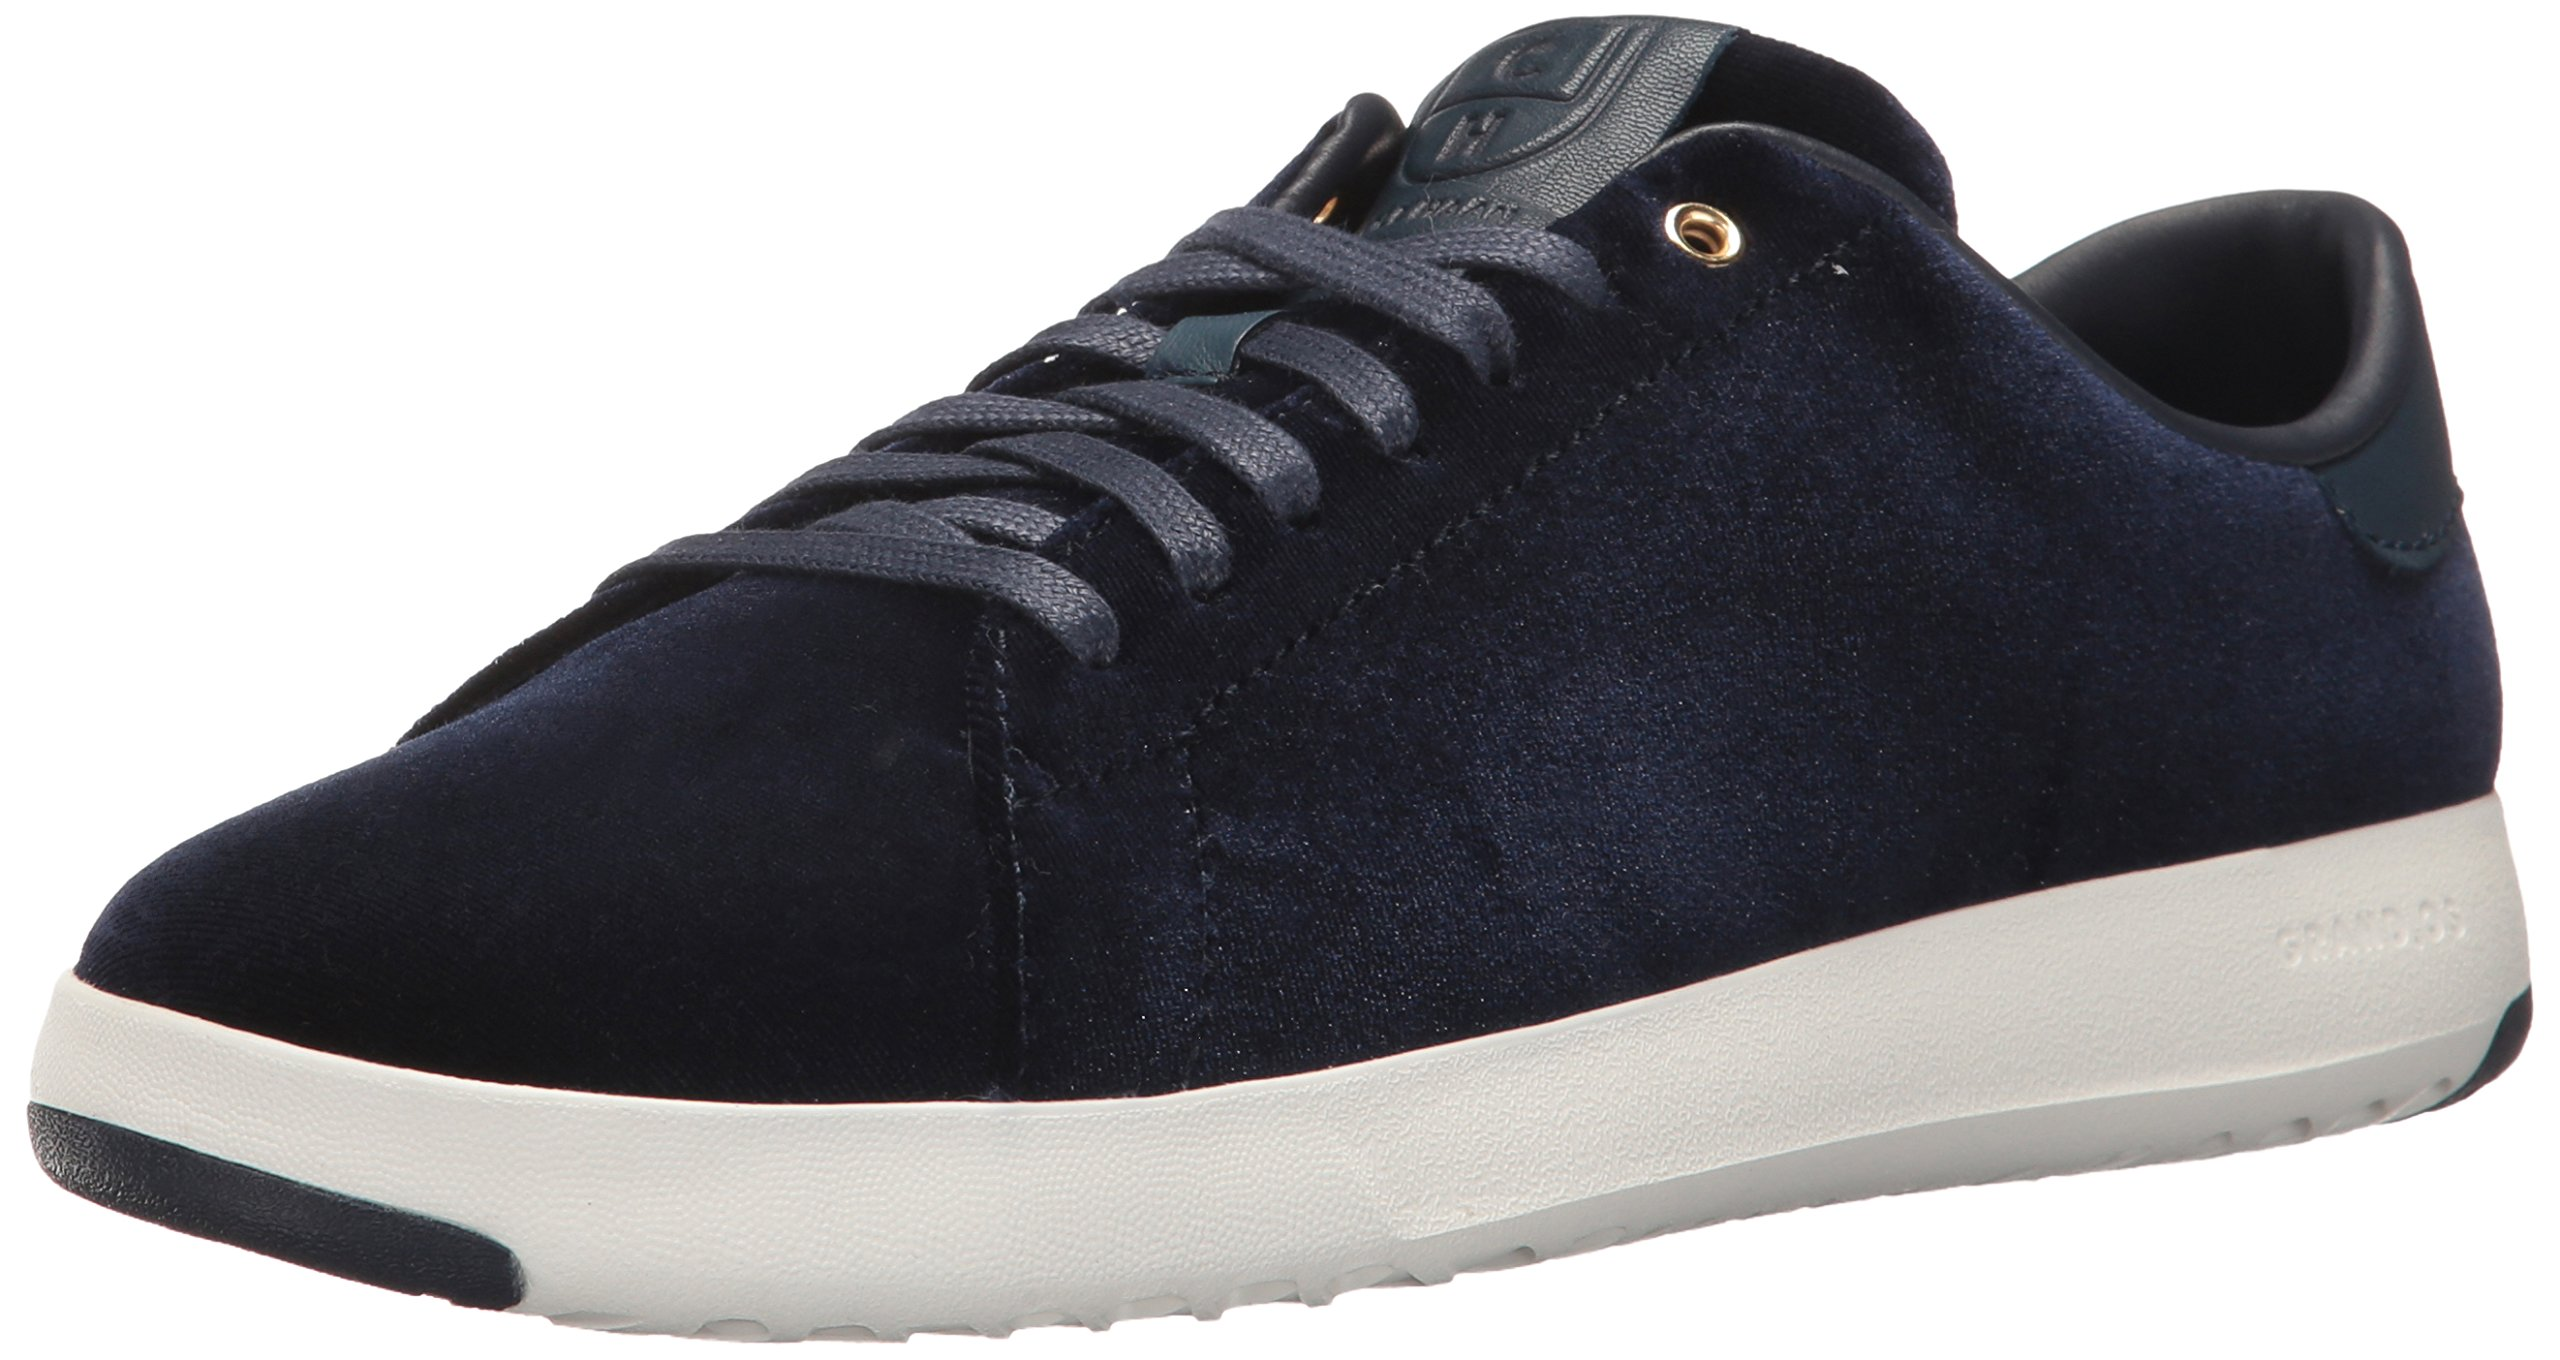 Cole Haan Women's Grandpro Tennis, Marine Blue, 6 B US